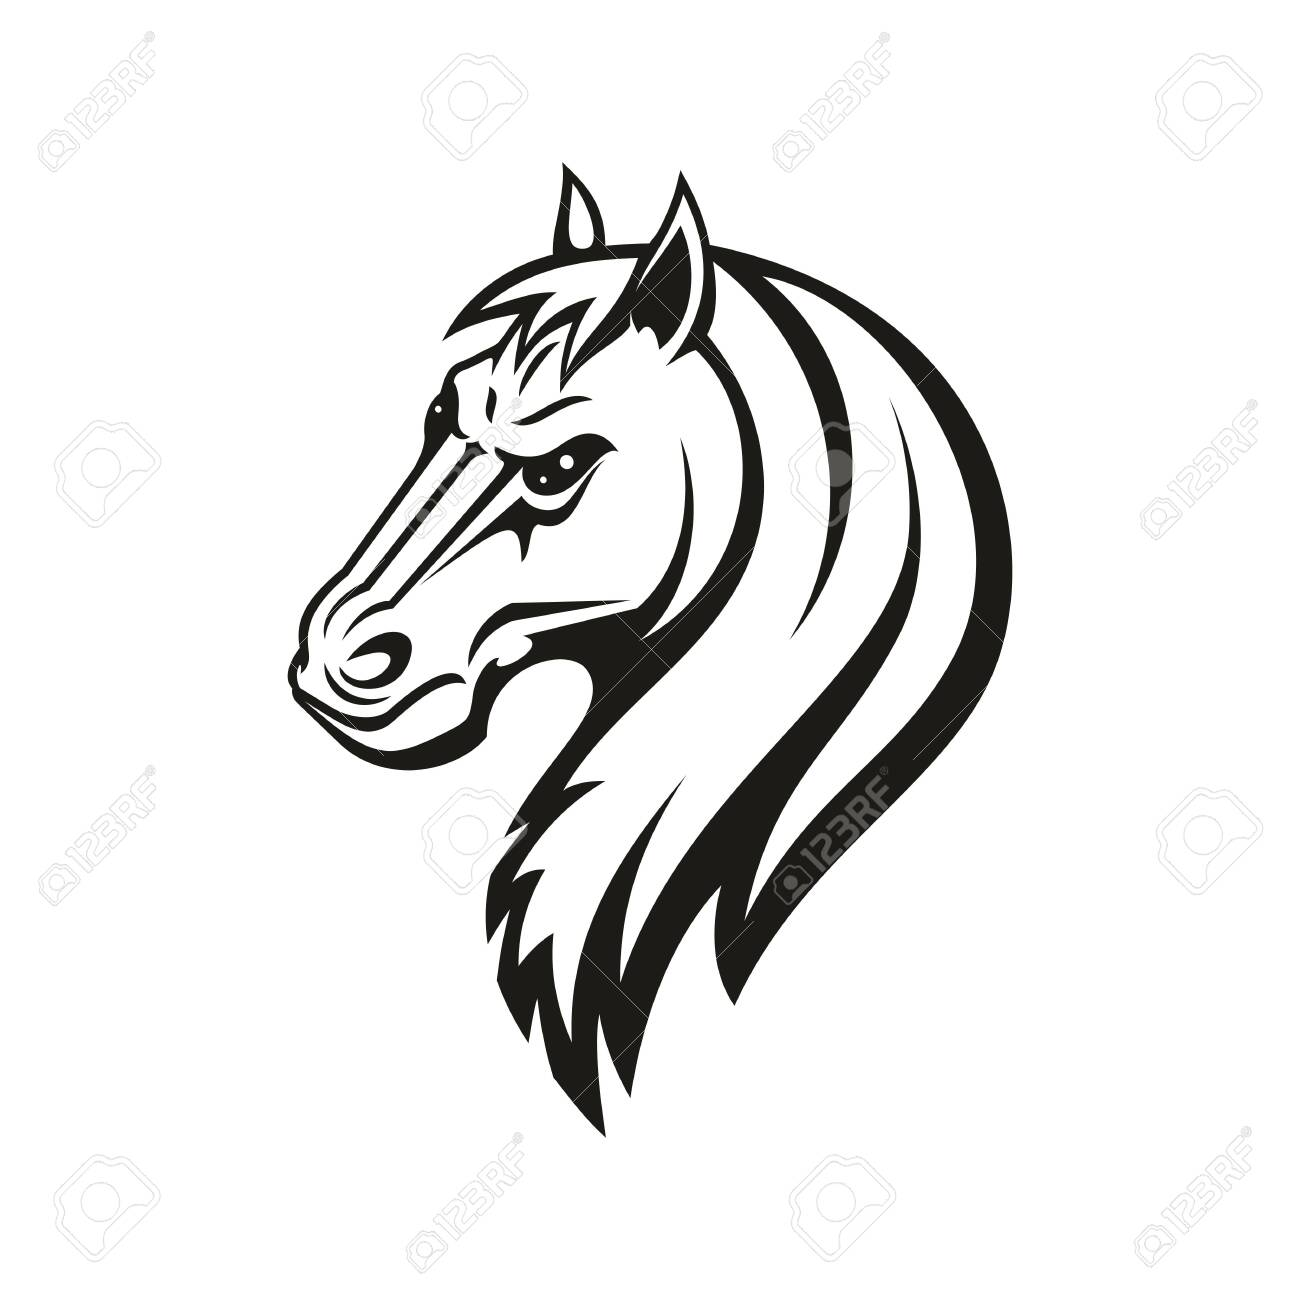 Horse Animal Icon Of Tribal Tattoo Or Racing Sport Mascot Head Royalty Free Cliparts Vectors And Stock Illustration Image 137233715